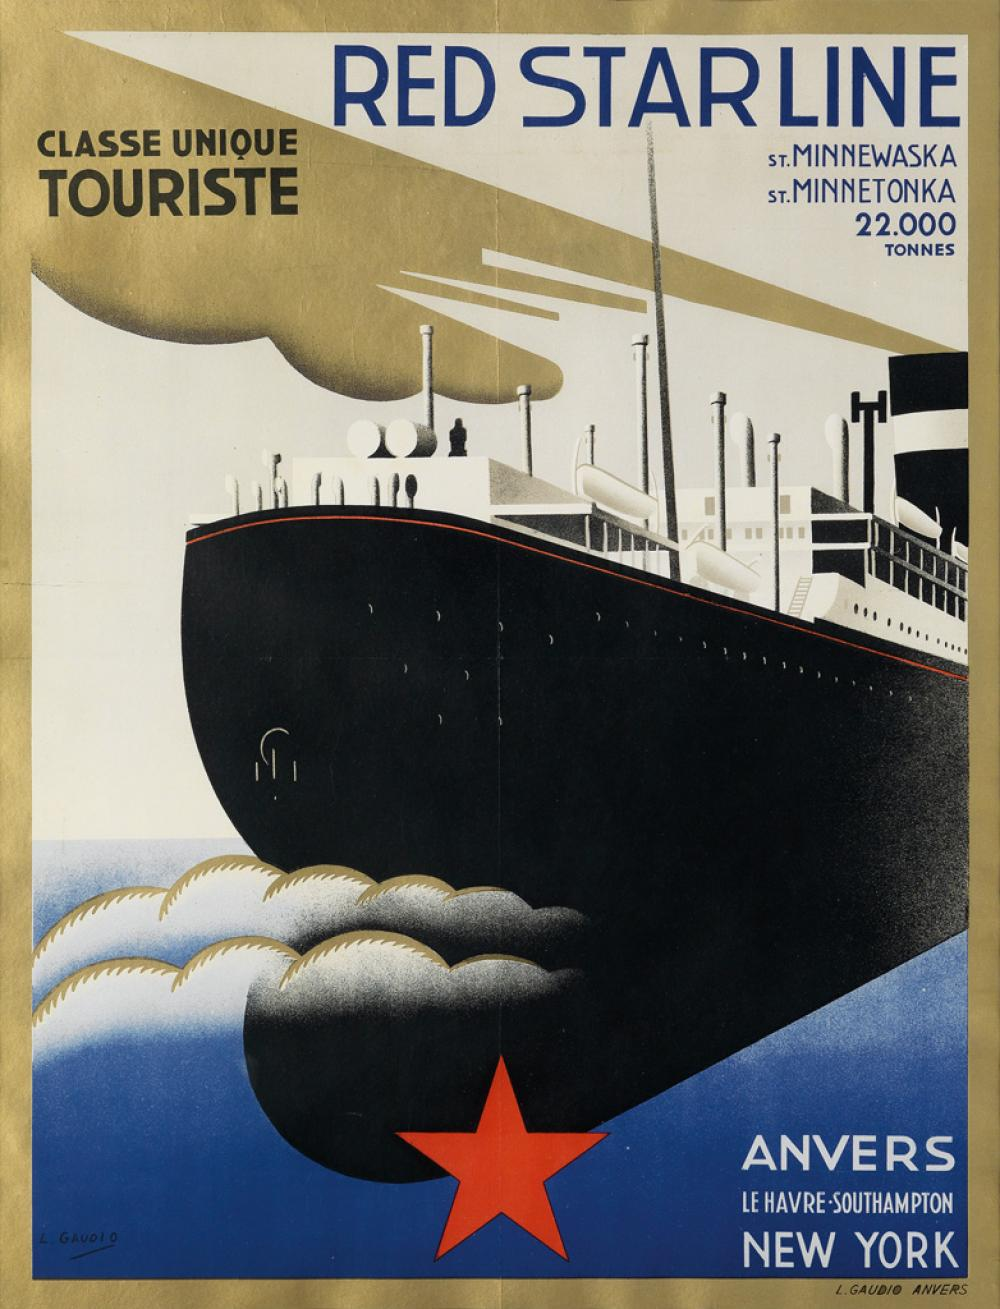 DESIGNER UNKNOWN. RED STAR LINE / CLASSE UNIQUE TOURISTE. Circa 1932. 25x19 inches, 64x164 cm. L. Gaudio, Anvers.